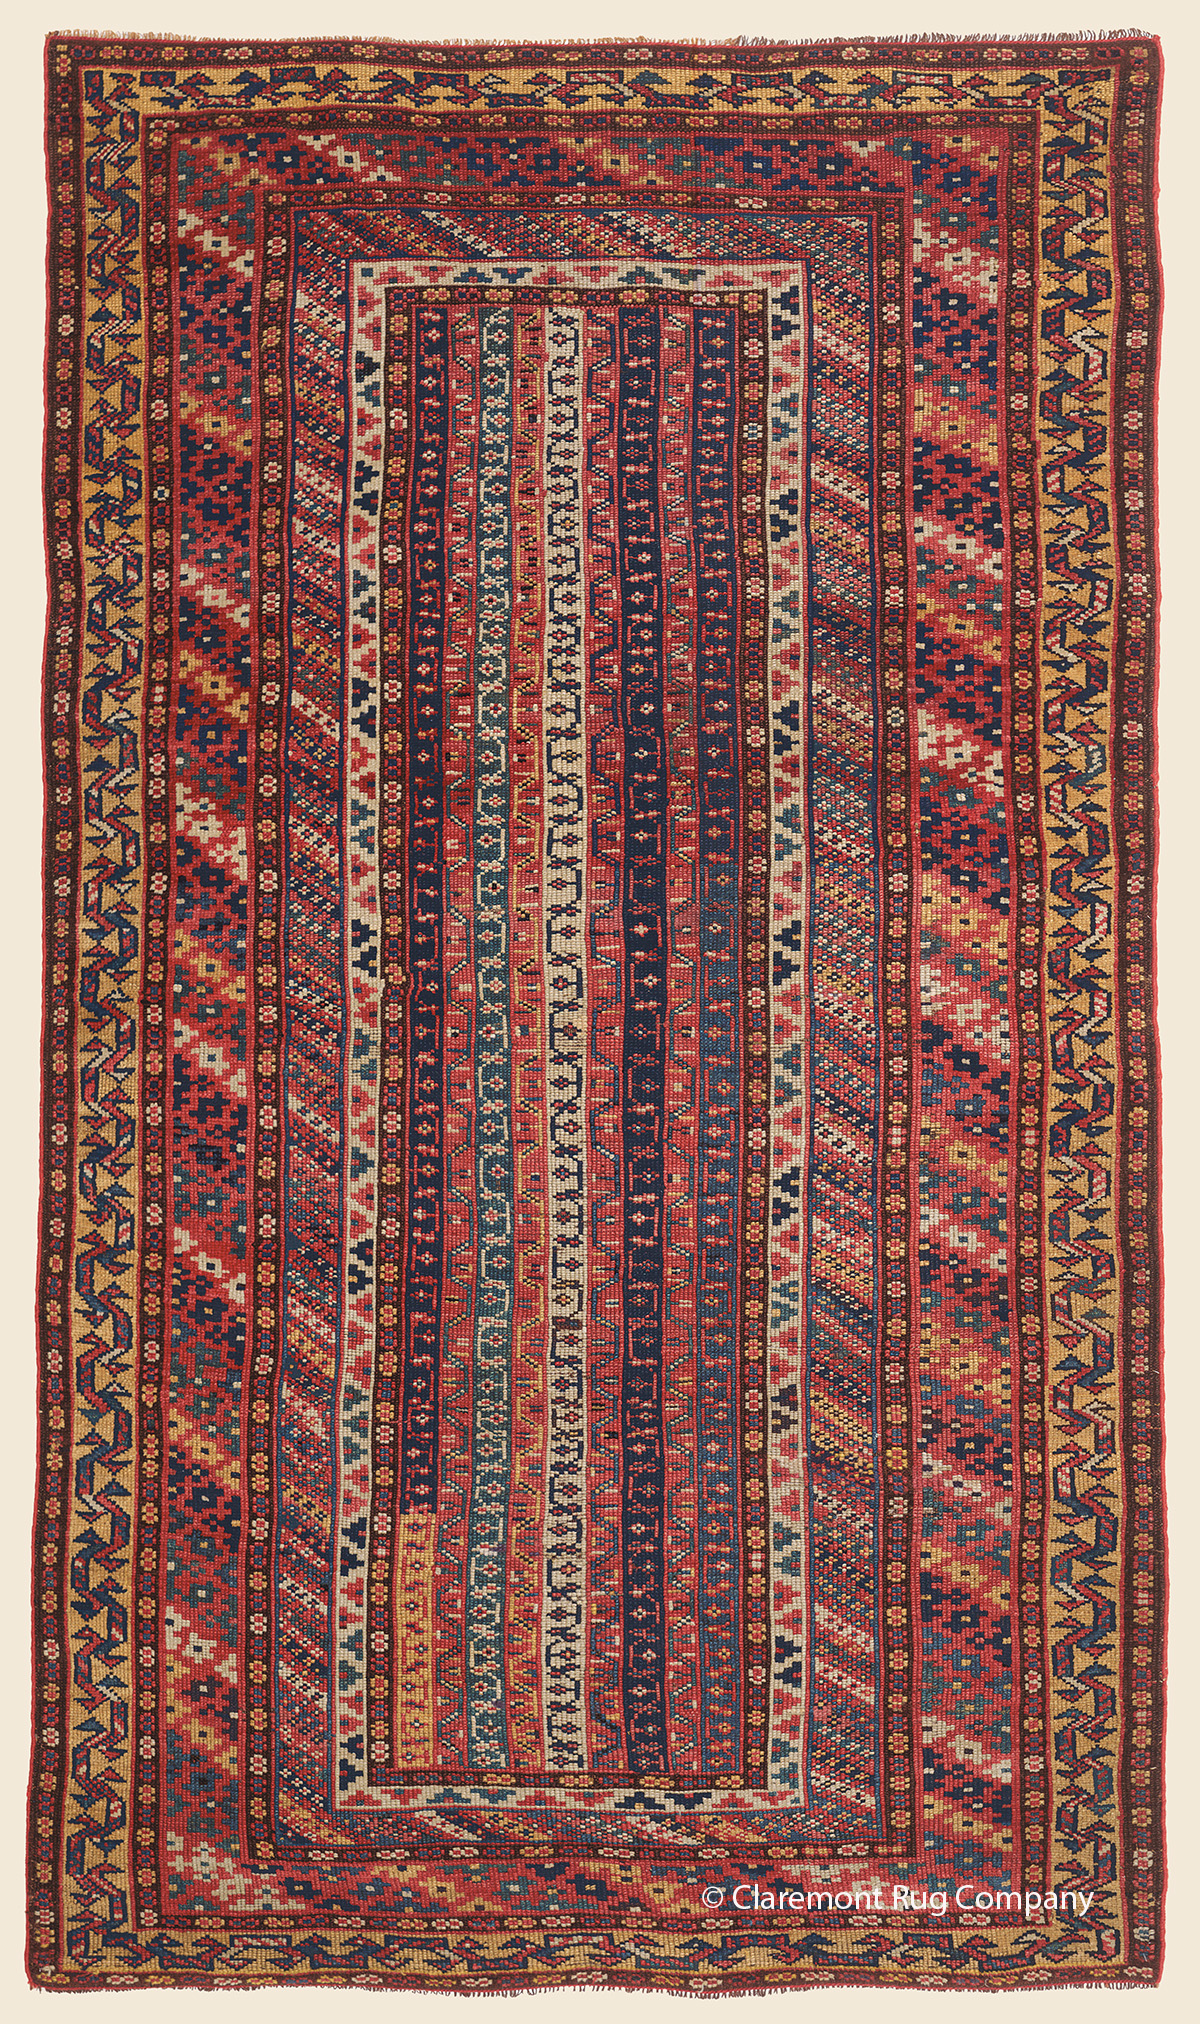 Circa 1900 Antique Persian Kurdish carpet with vertical stripes and floral design 4ft x 6ft